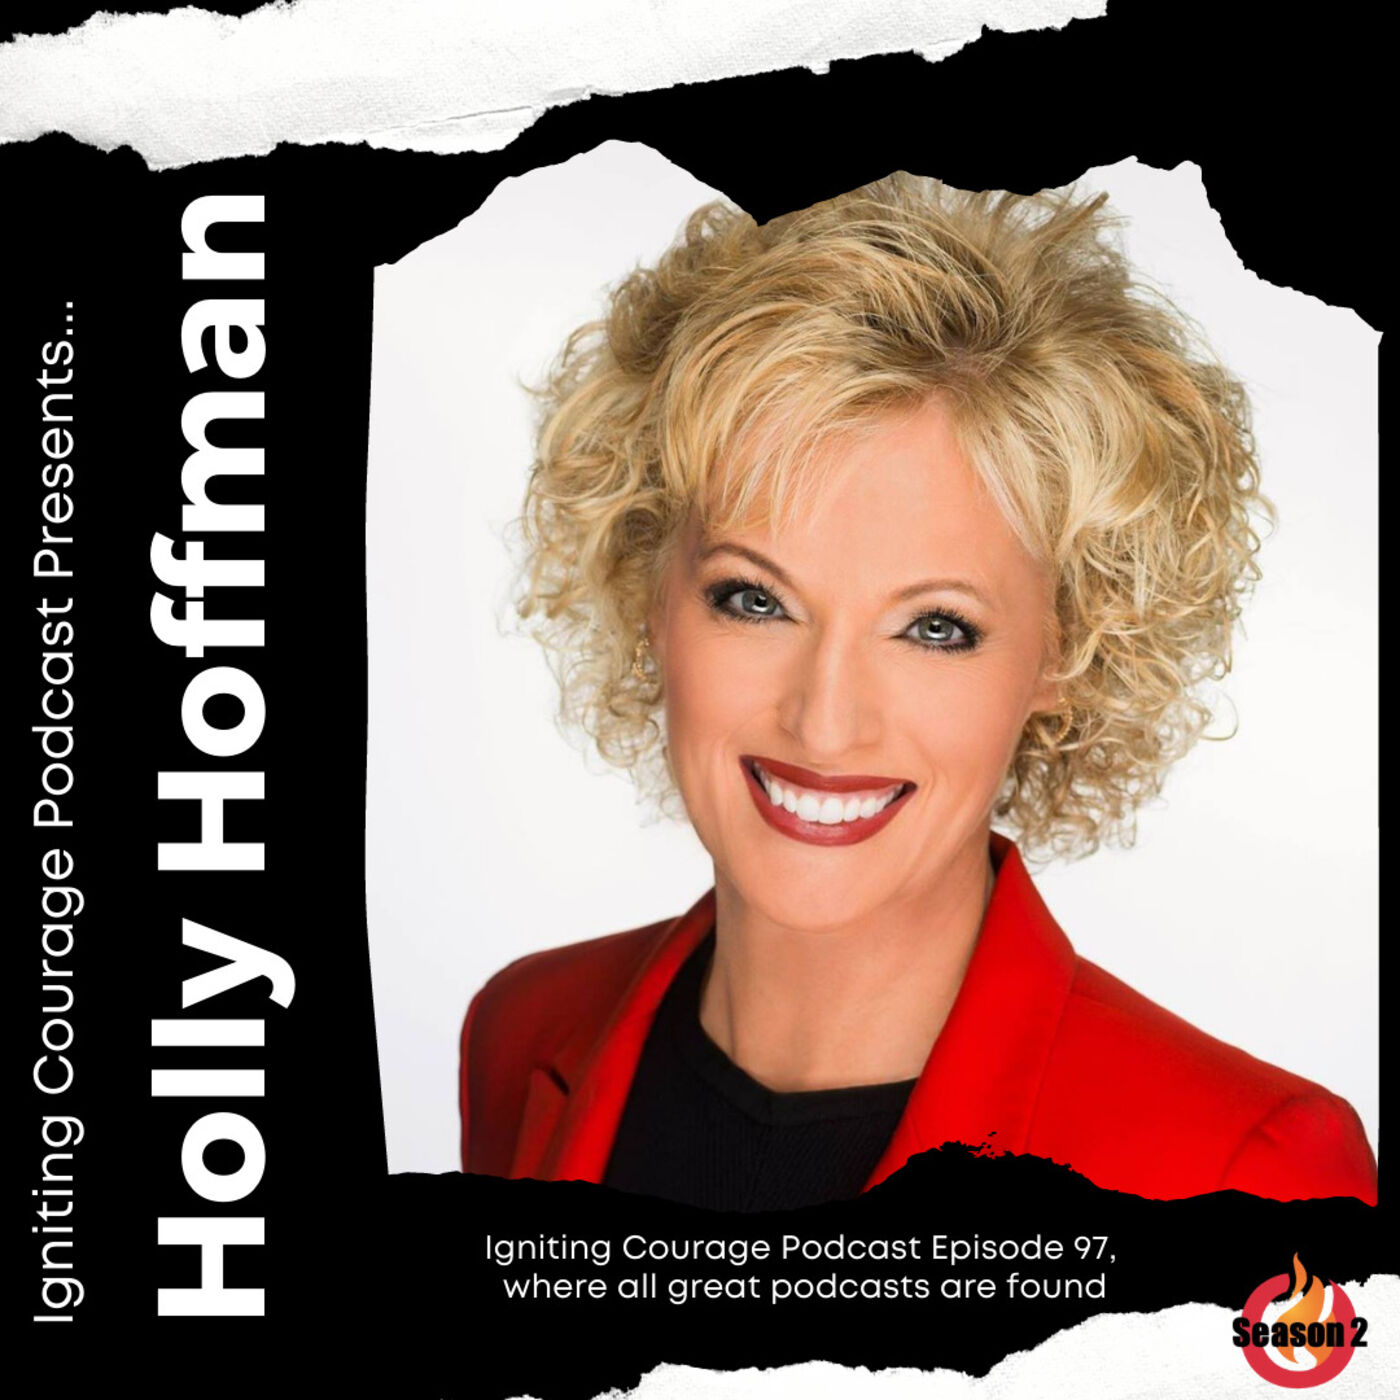 IGNITING COURAGE Podcast Episode 97: Holly Hoffman